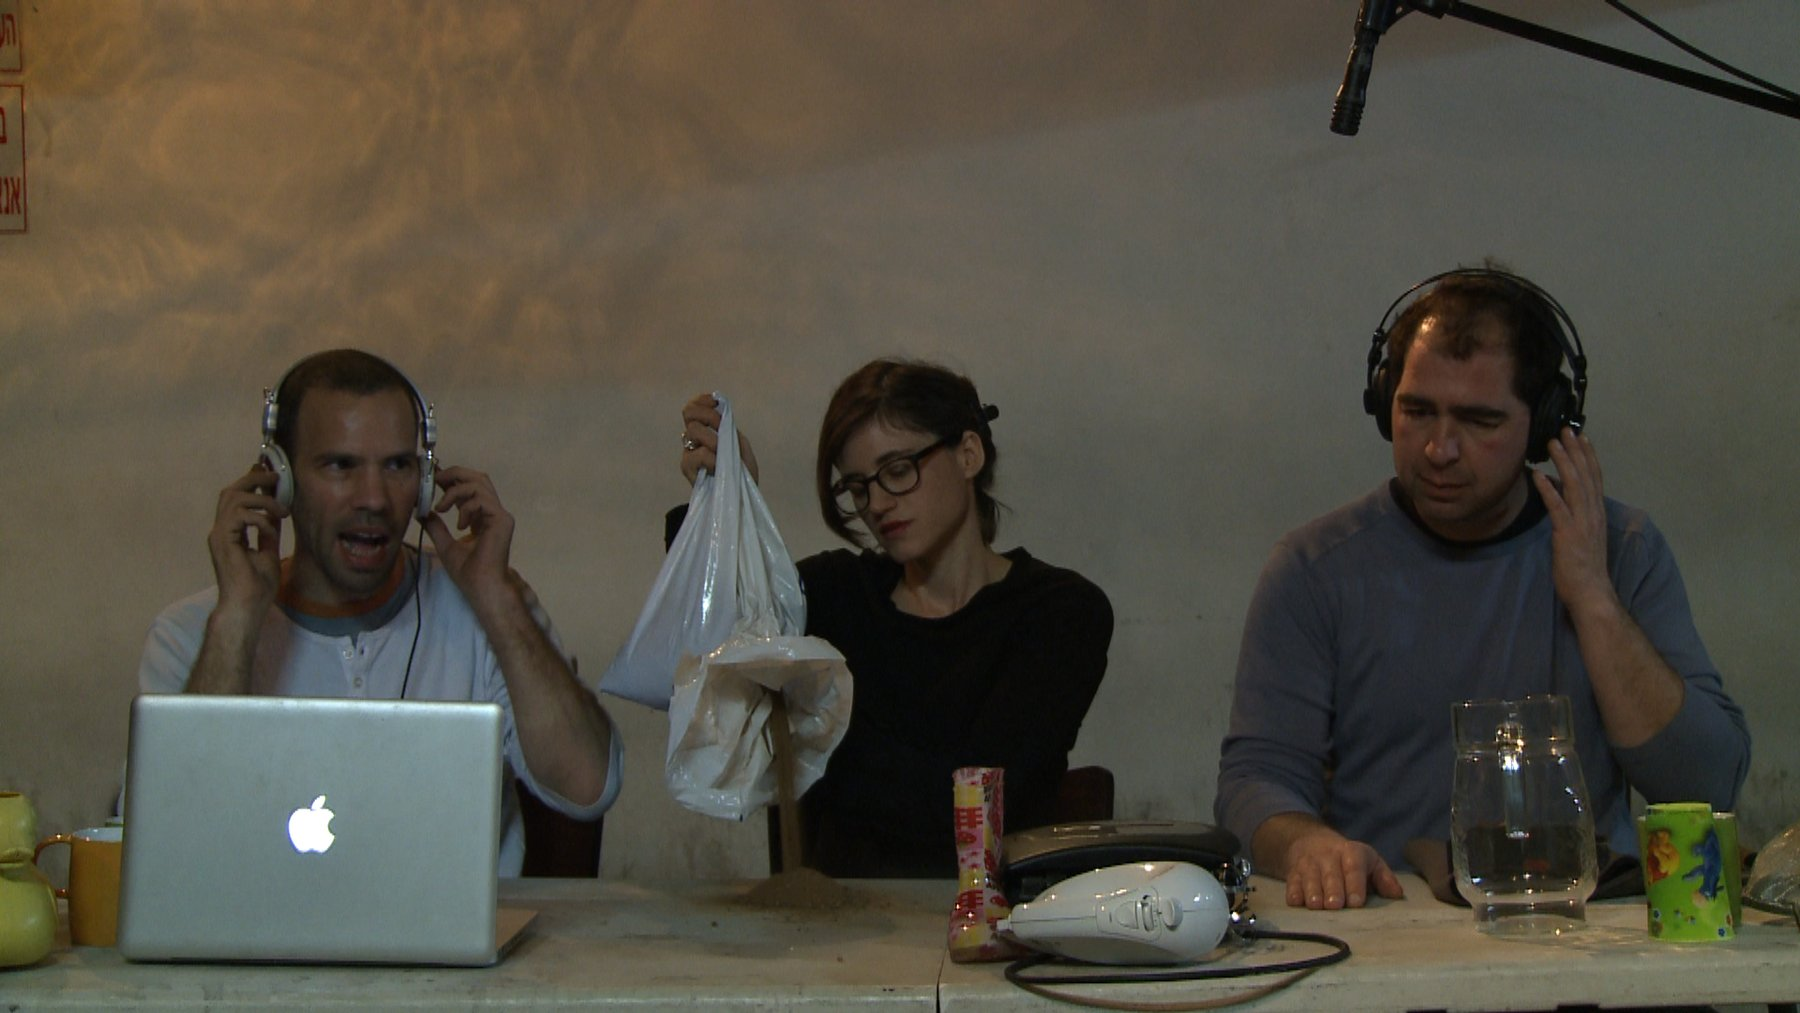 Two Caucasian men and one women sit at a table with a computer and various other items, Ben Ner Soundtracks